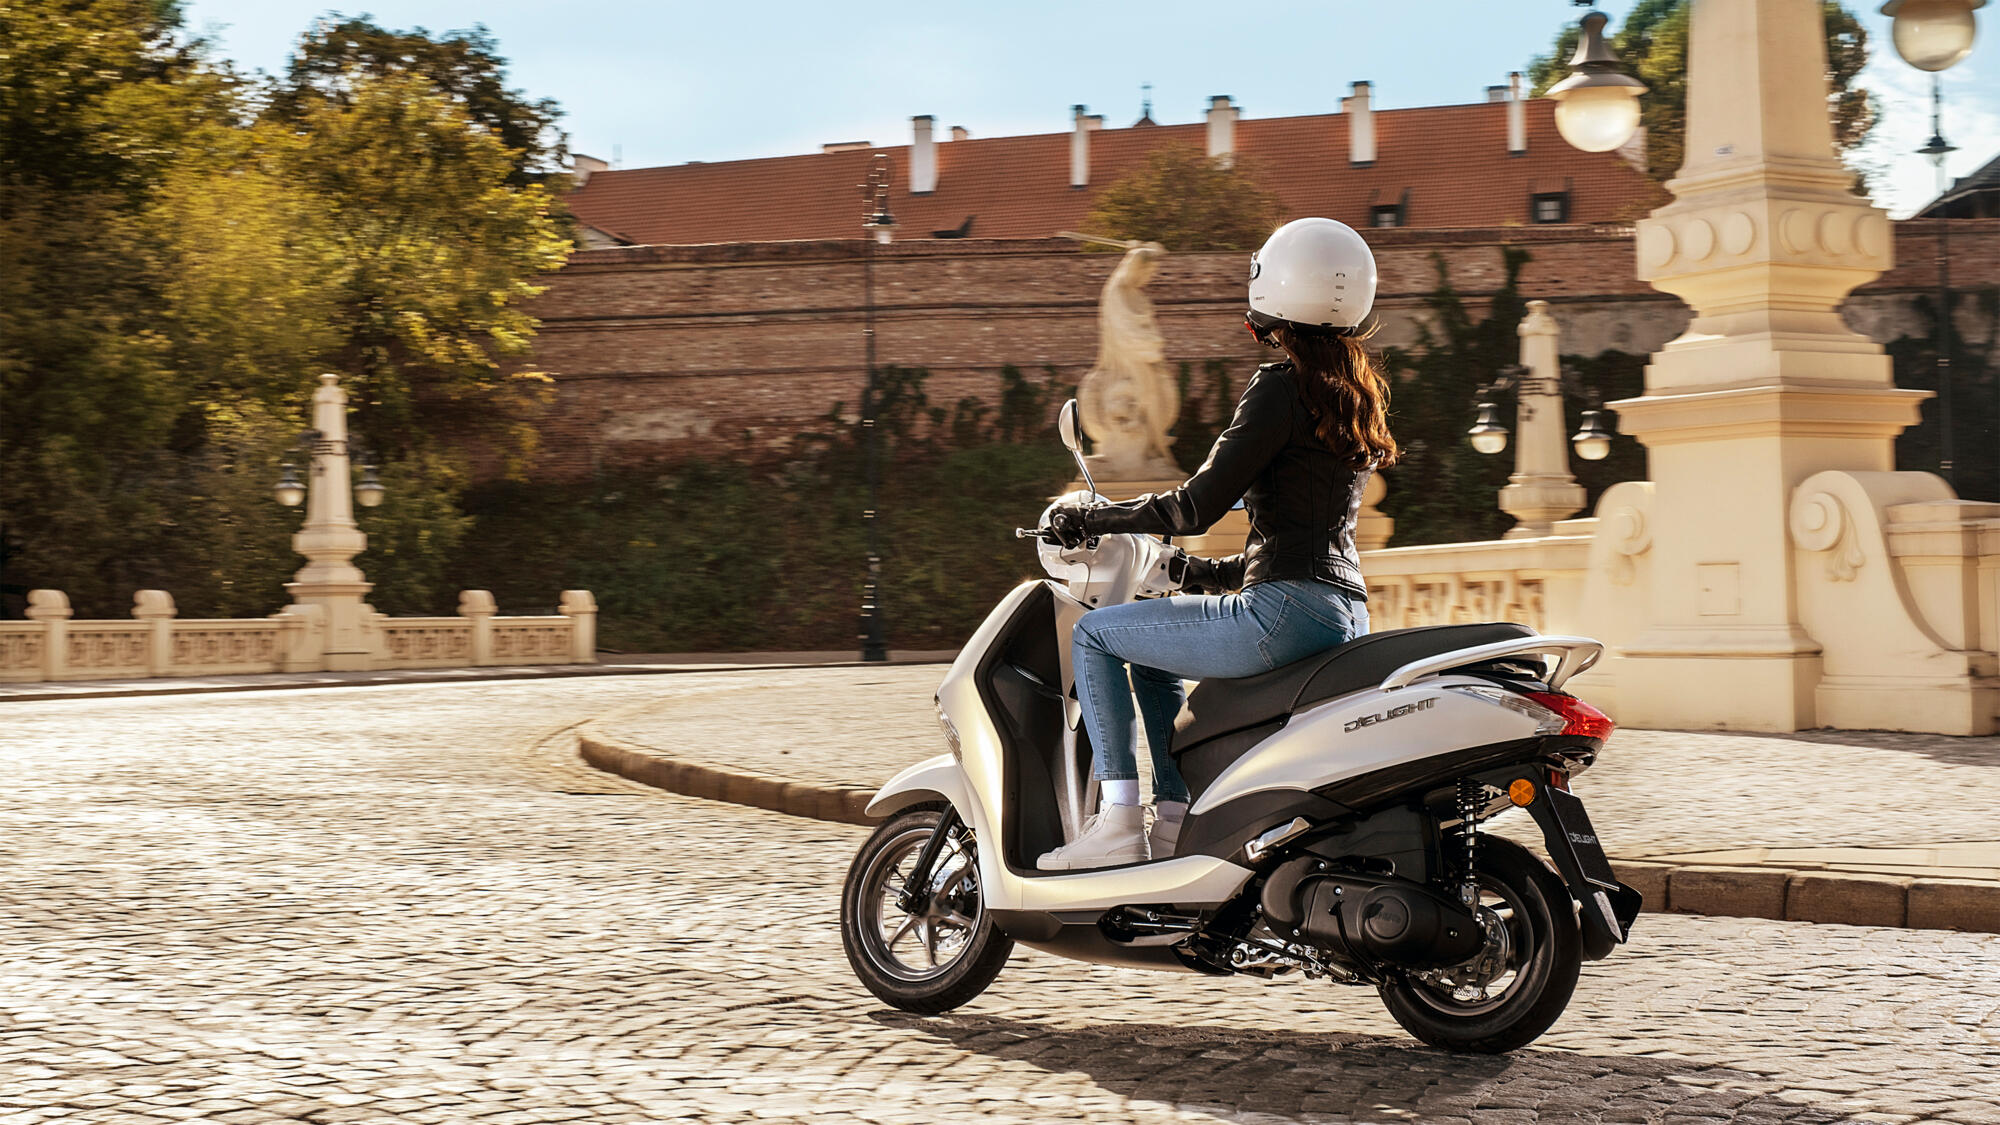 For 2021 Yamaha Offers The New Nmax 125/155 And New D'elight 125